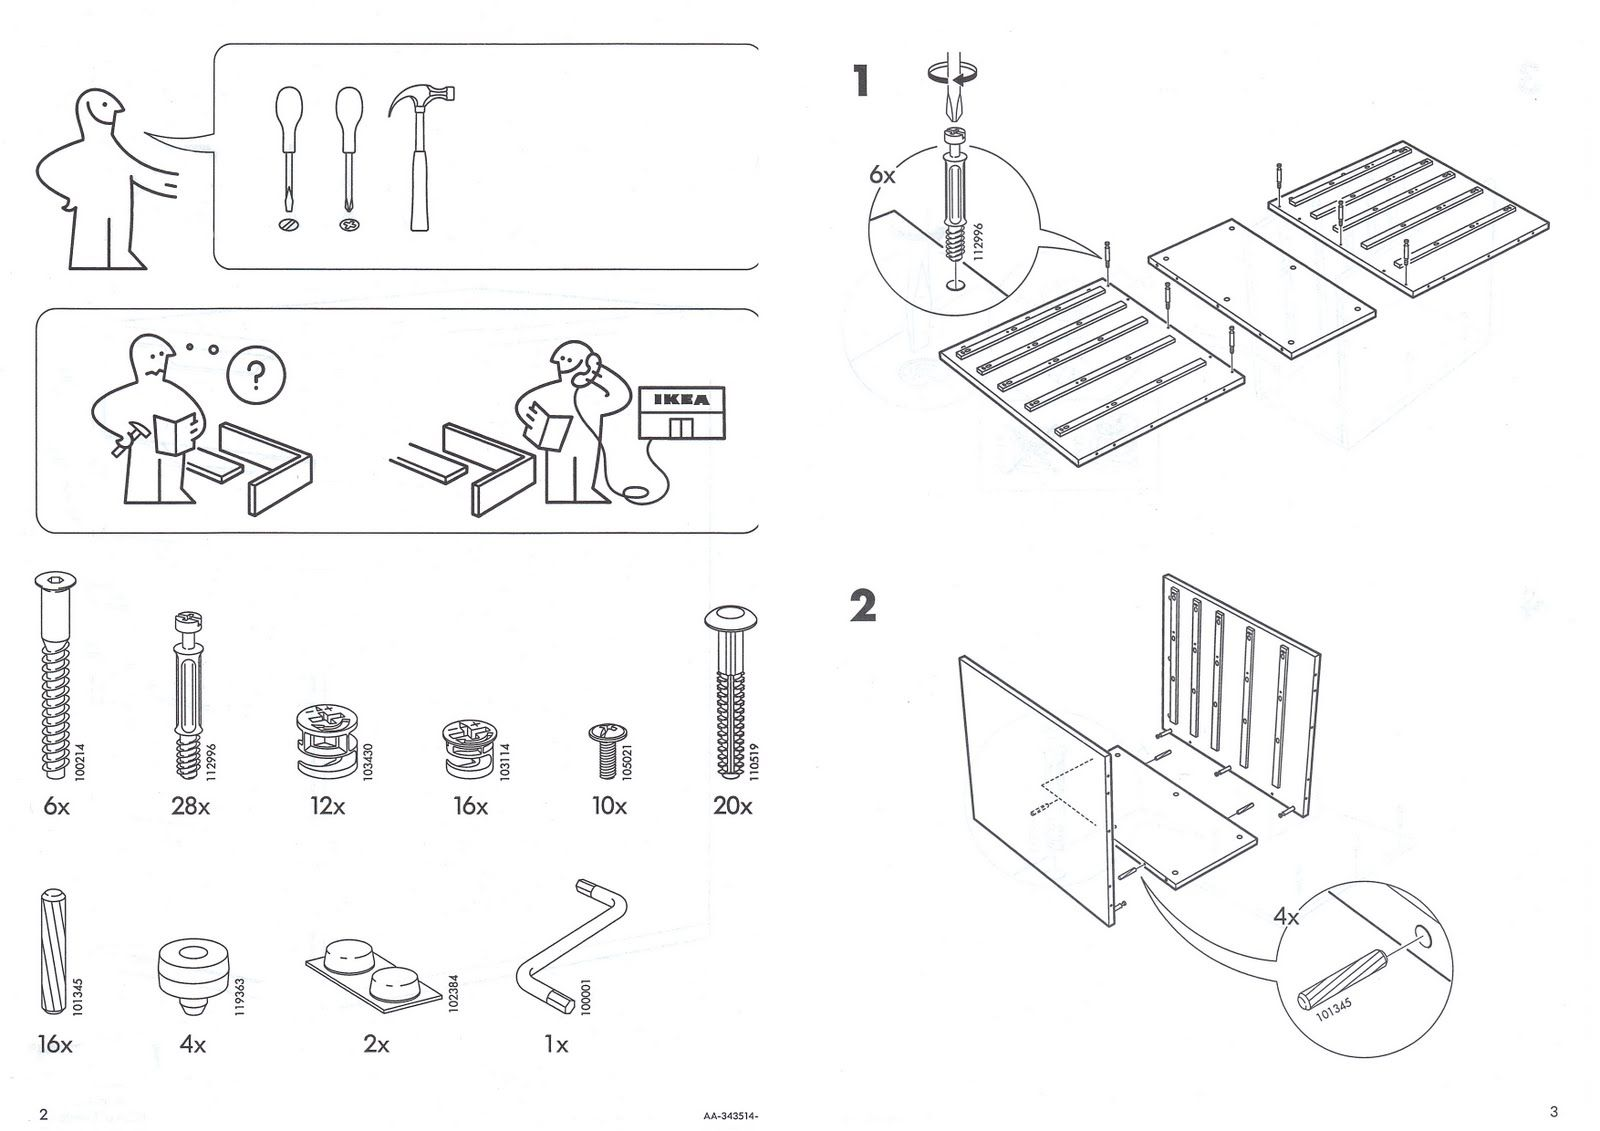 Instrucciones Muebles Ikea Ikea Manual Instruction Manual Design Pinterest Medias